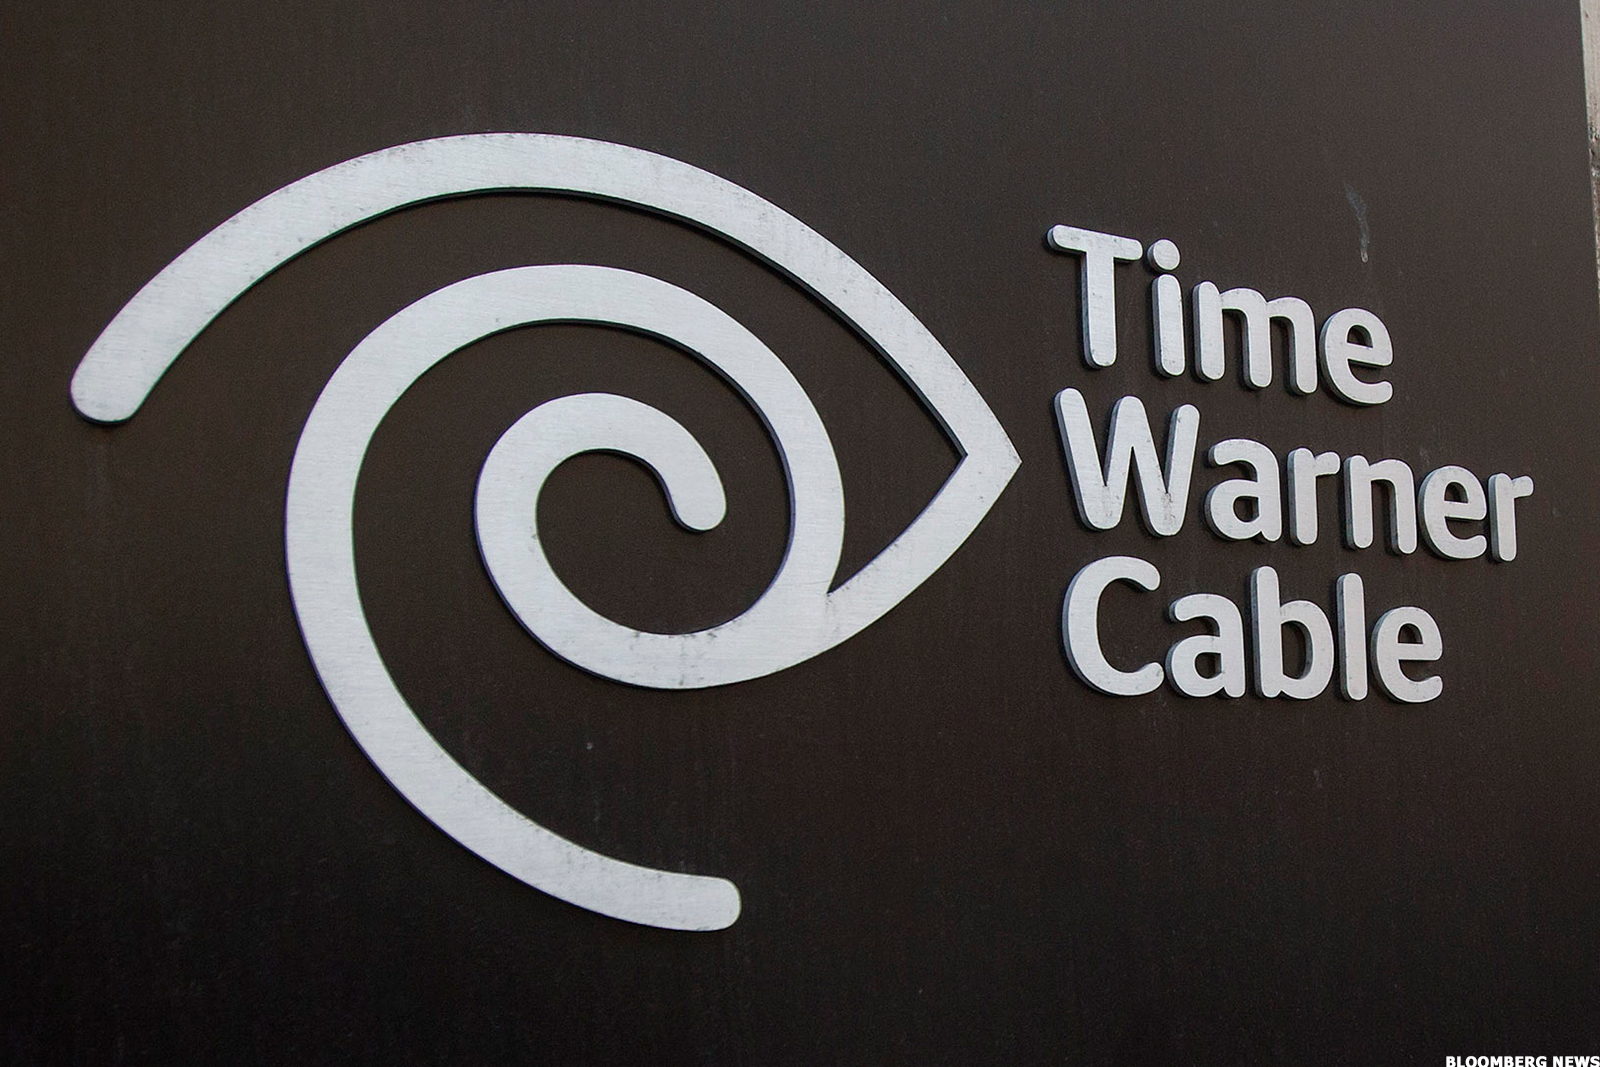 timewarnercable2?resize=665%2C443&ssl=1 time warner cable wiring diagrams cable tv hook up diagrams, time time warner cable phone wiring diagram at panicattacktreatment.co